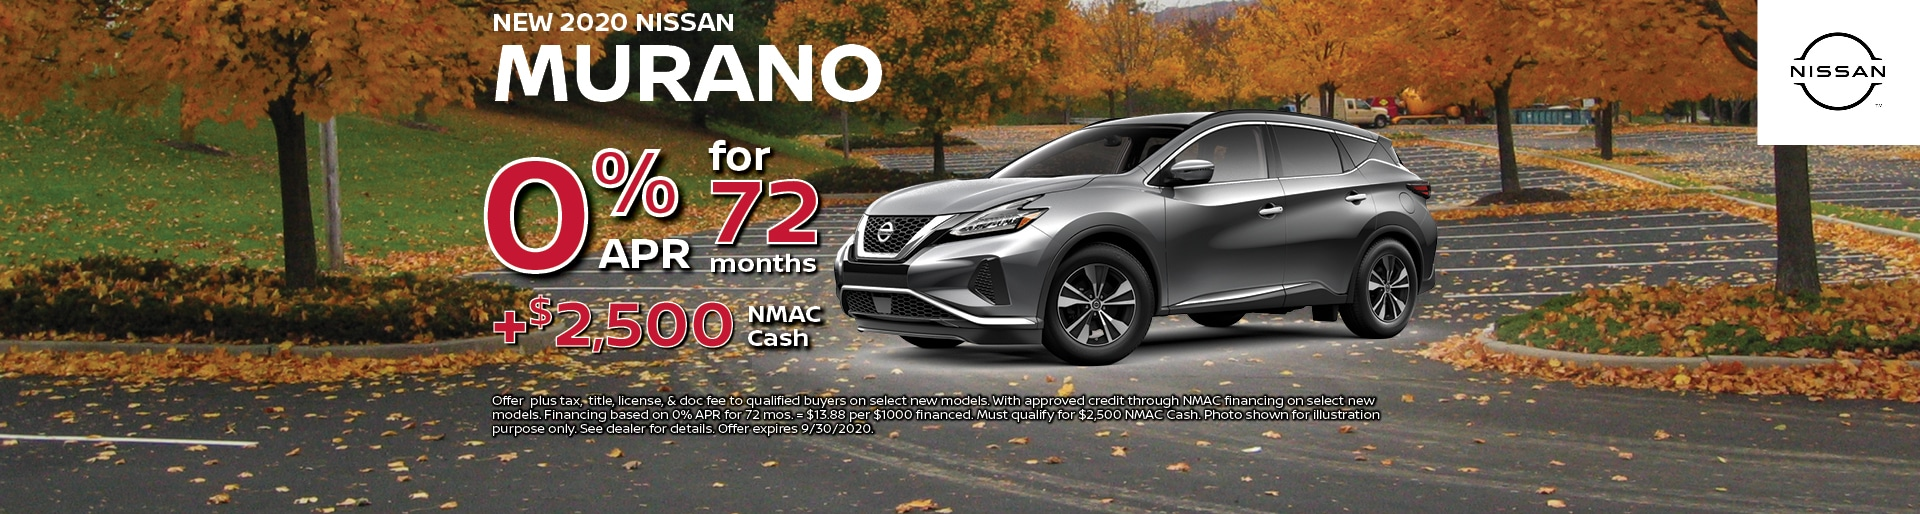 2020 Nissan Murano Special Offer | Hugh White Nissan Lancaster, OH